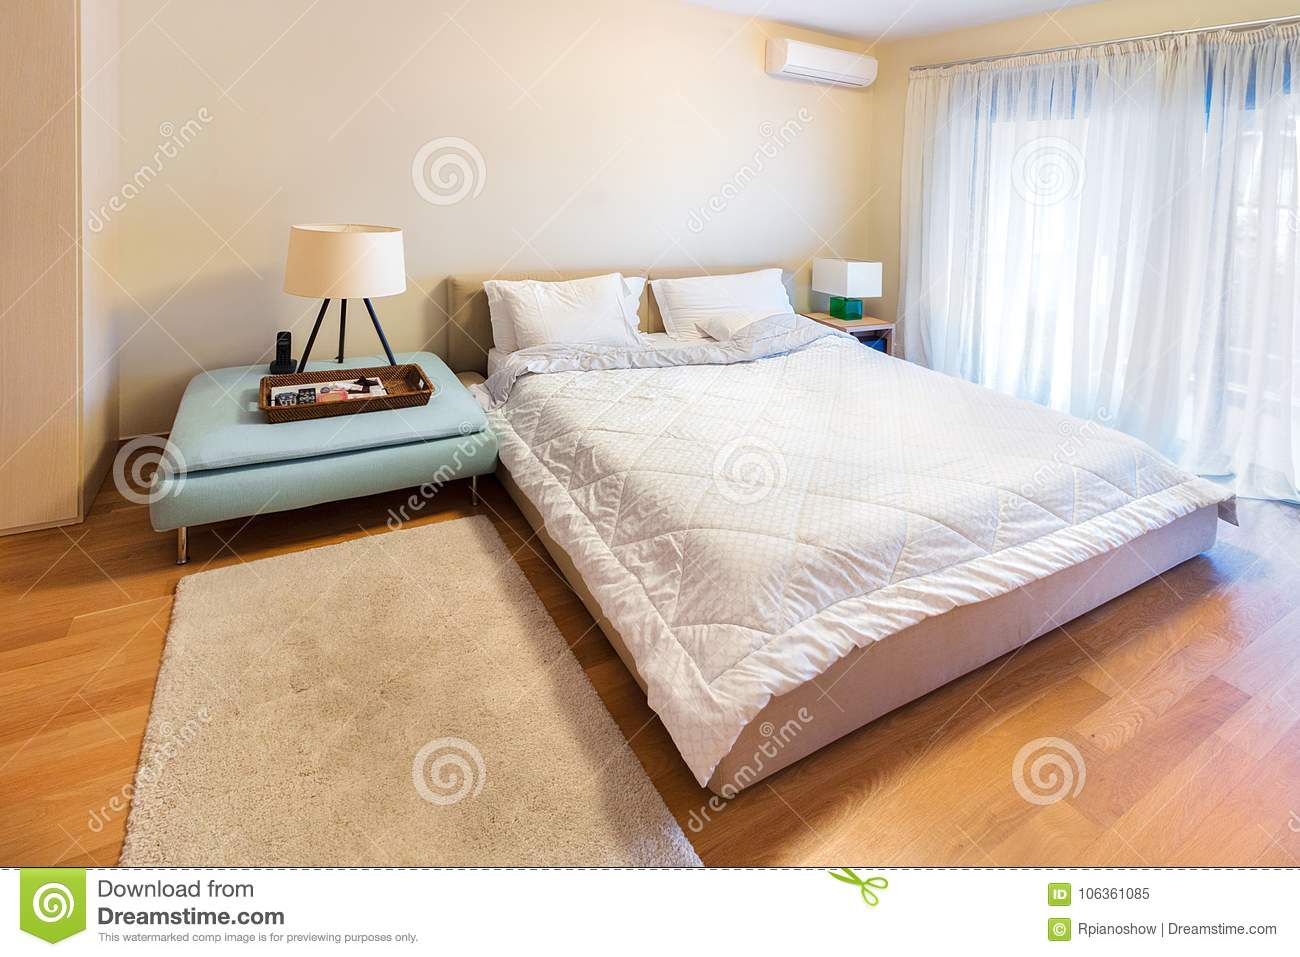 A Modern Bedroom With King Size Bed On Oak Floor Stock Image Image Of Decor Lamp 106361085